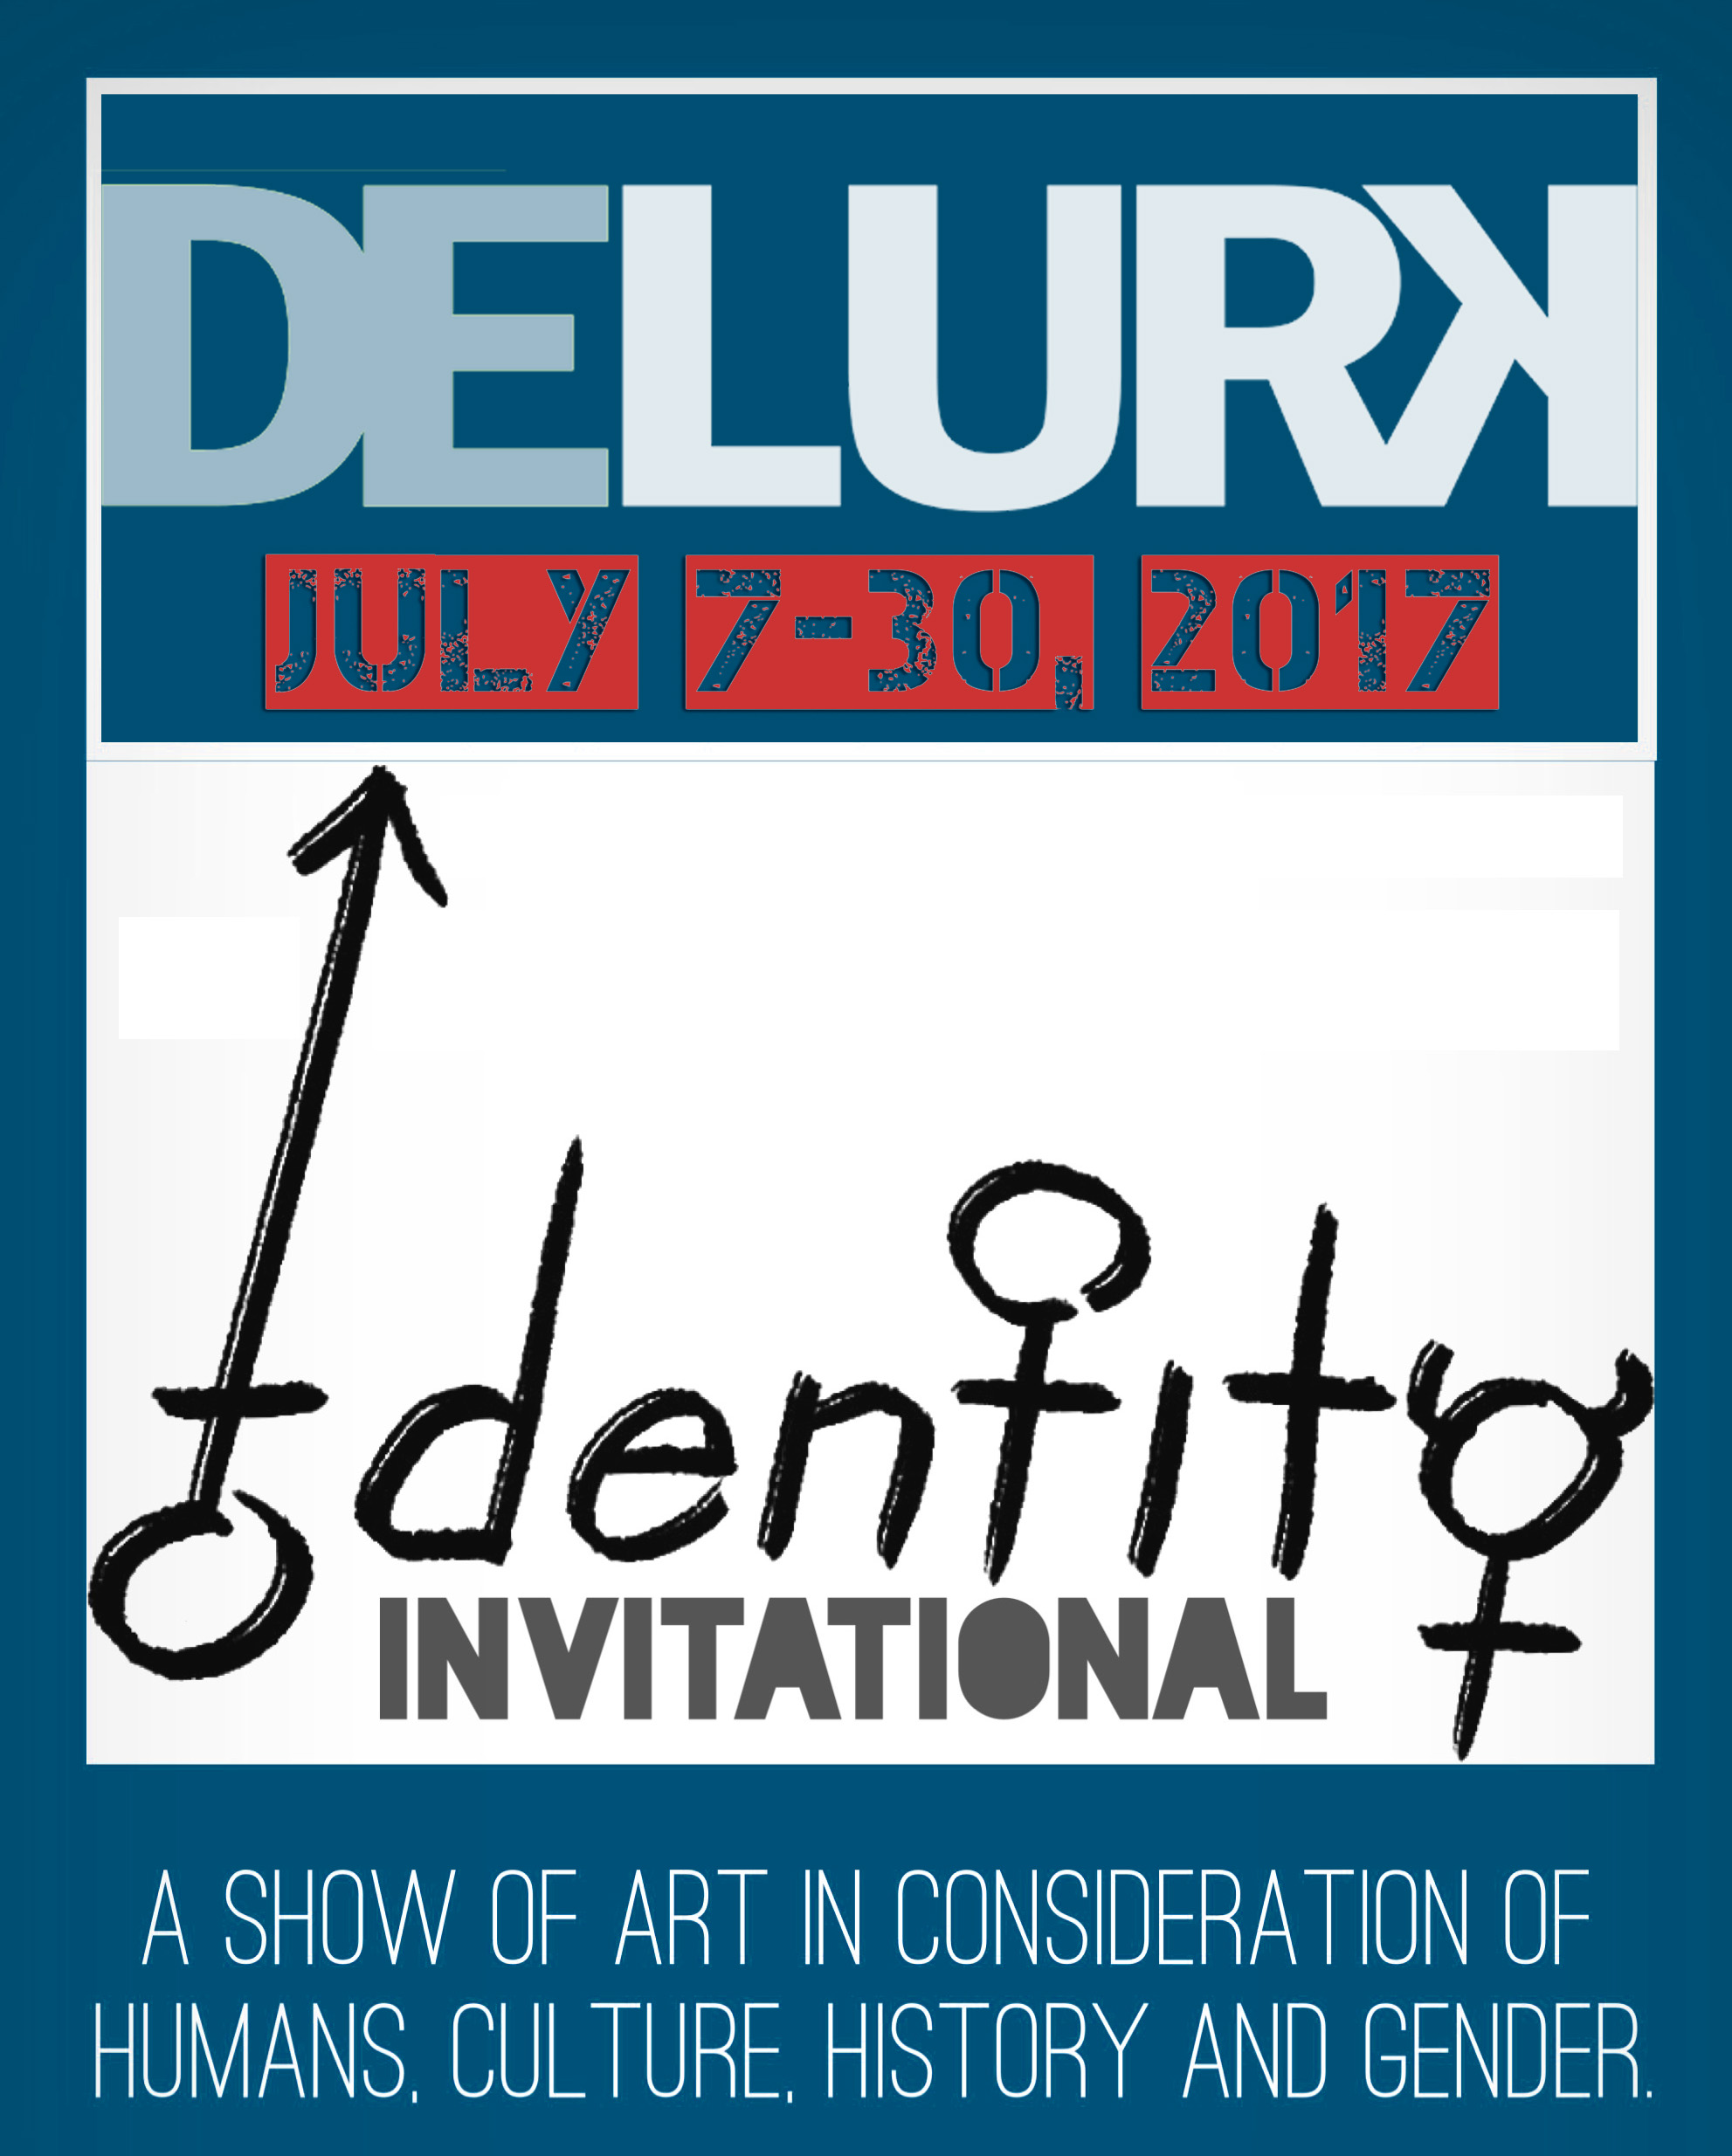 We hope that you will accept this invitation to participate by joining the conversation at Delurk this month..